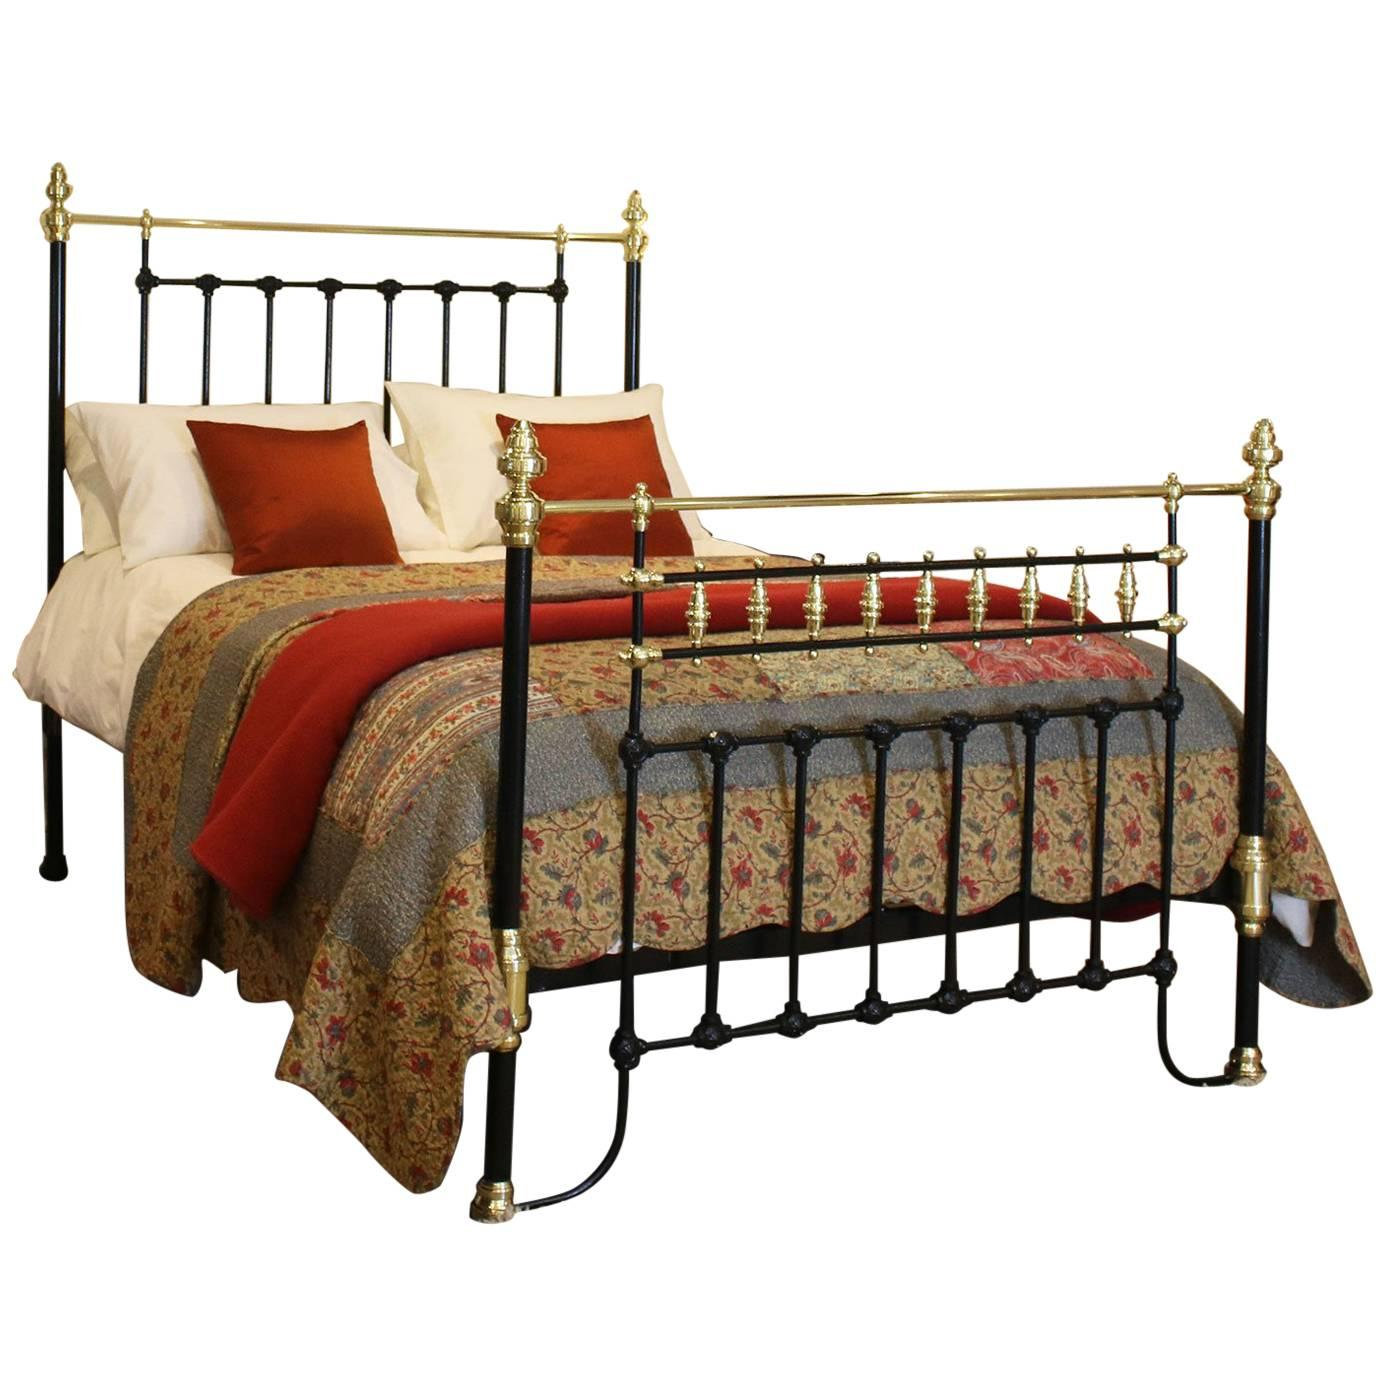 Antique and Vintage Beds and Bed Frames 1341 For Sale at 1stdibs